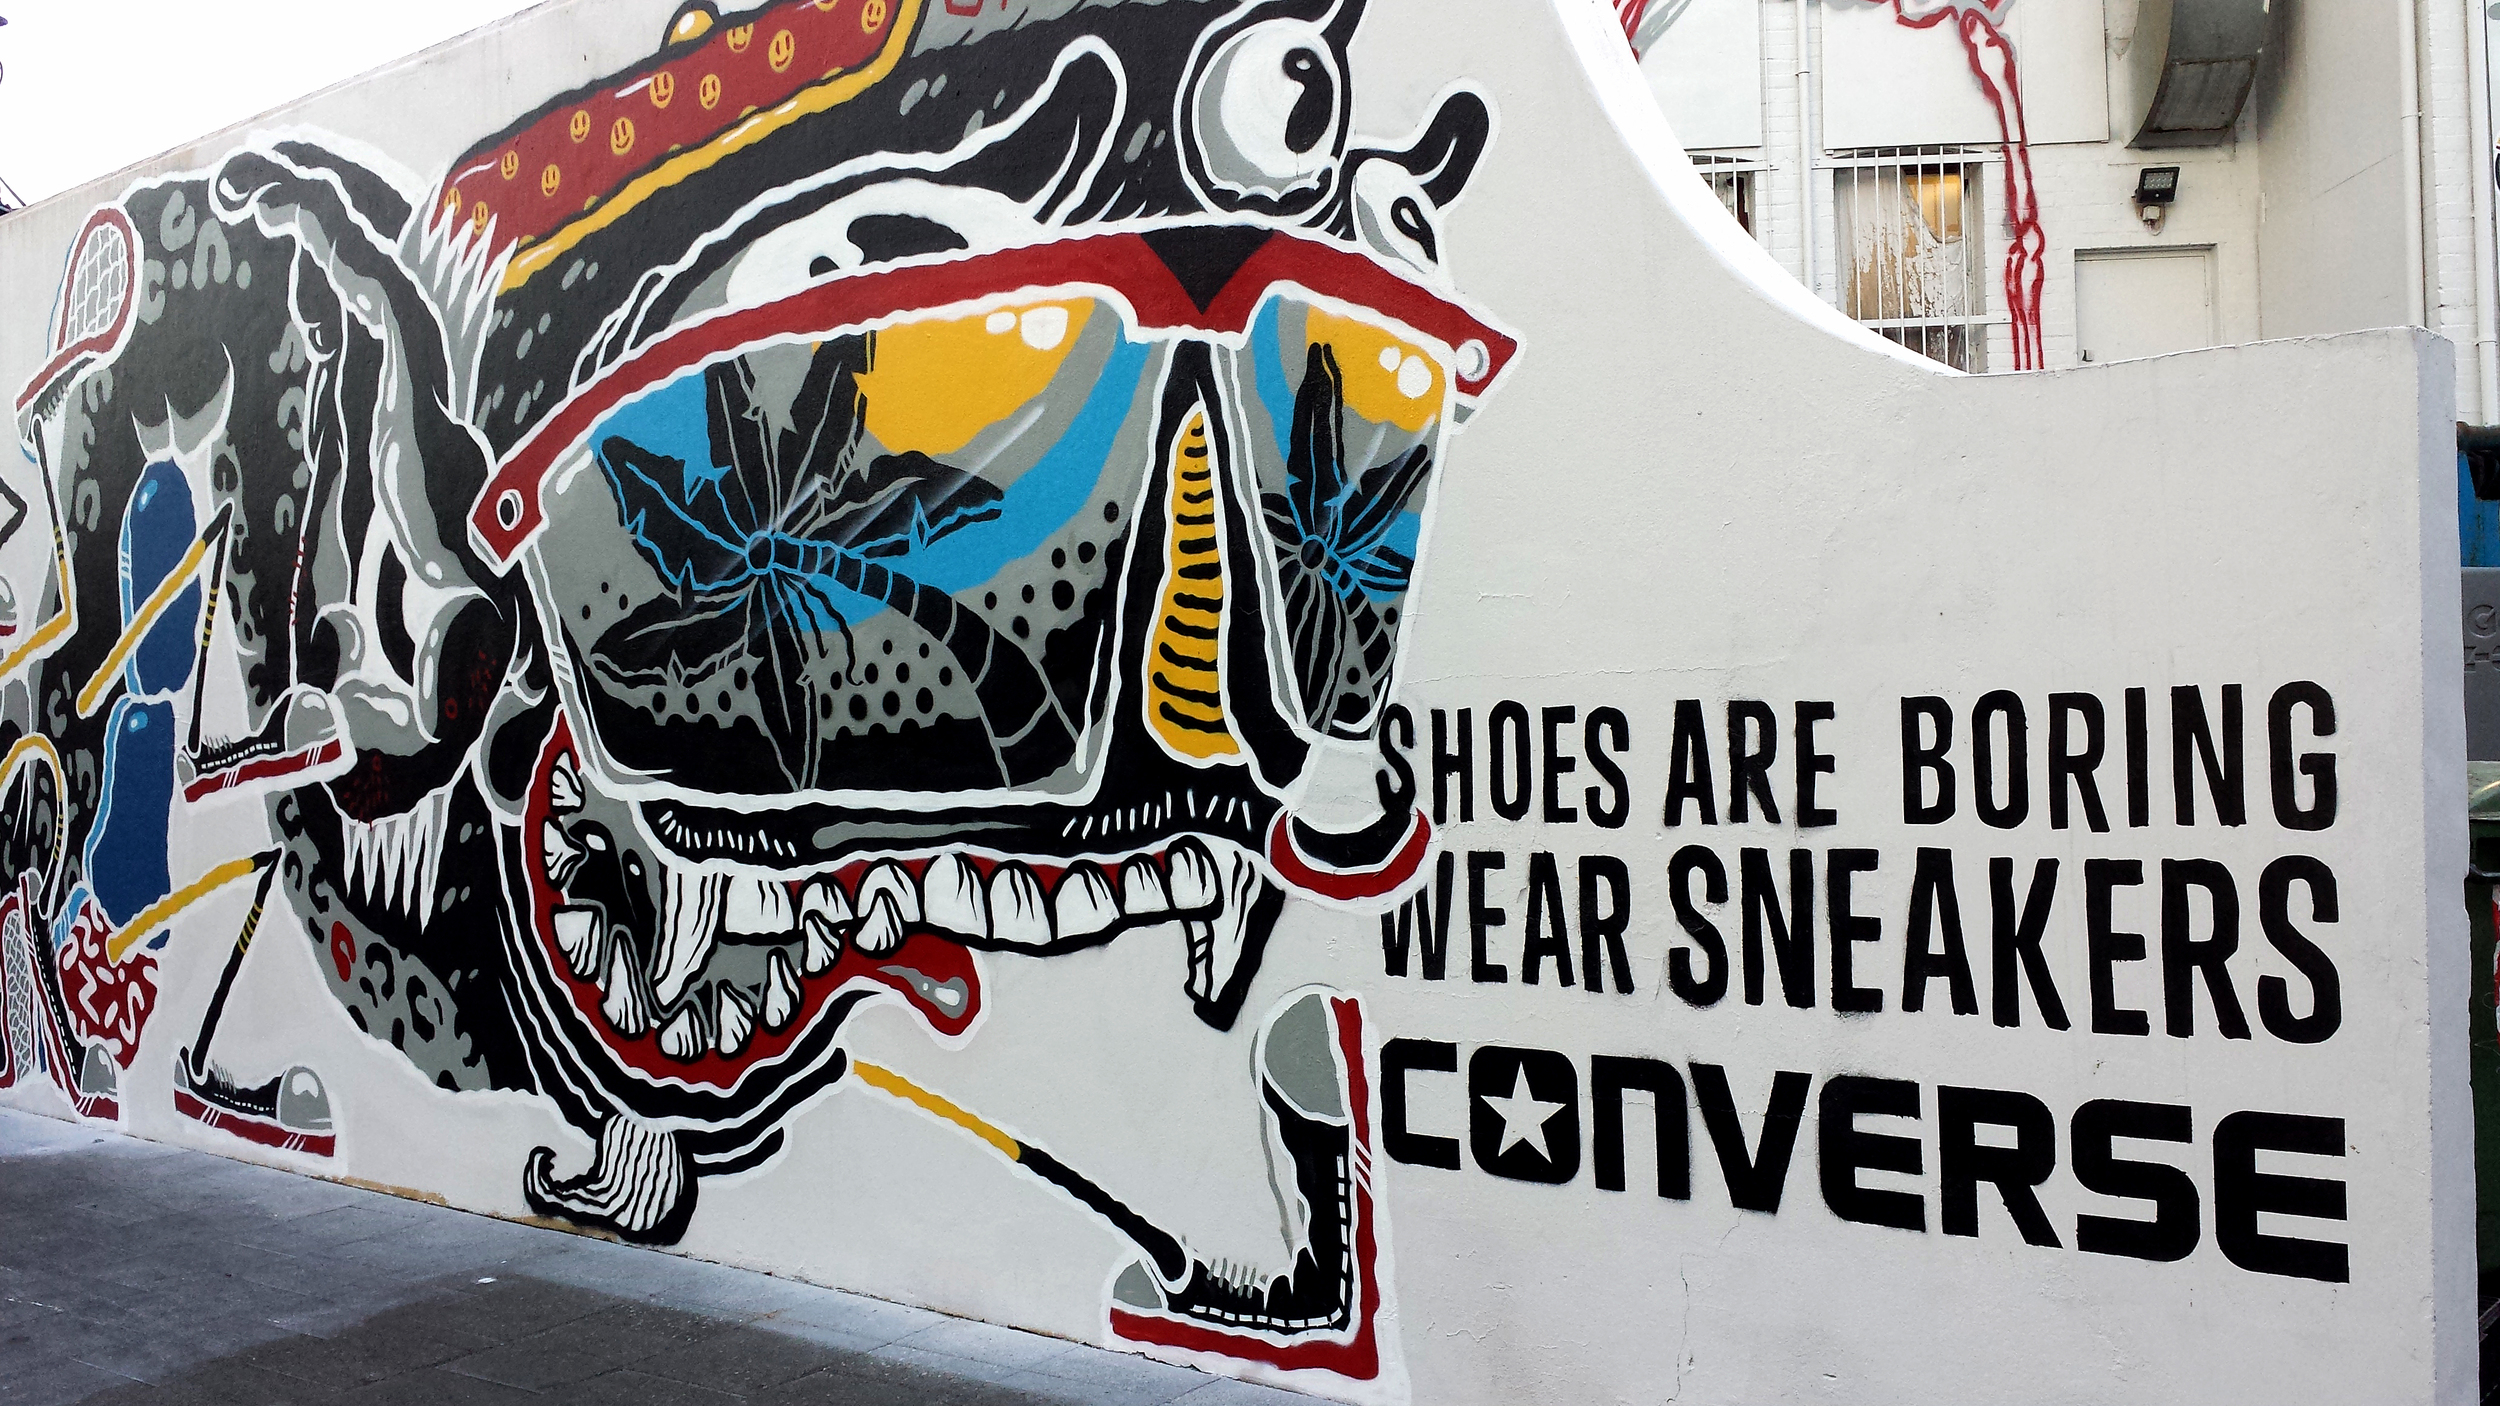 Converse, sneakers, shoes, graffiti, aerosol art, street art, local artist, fremantle, perth, art, advertising, marketing, promotion, design, visual arts, stencil, spray paint, perth art, australian art, nezuki